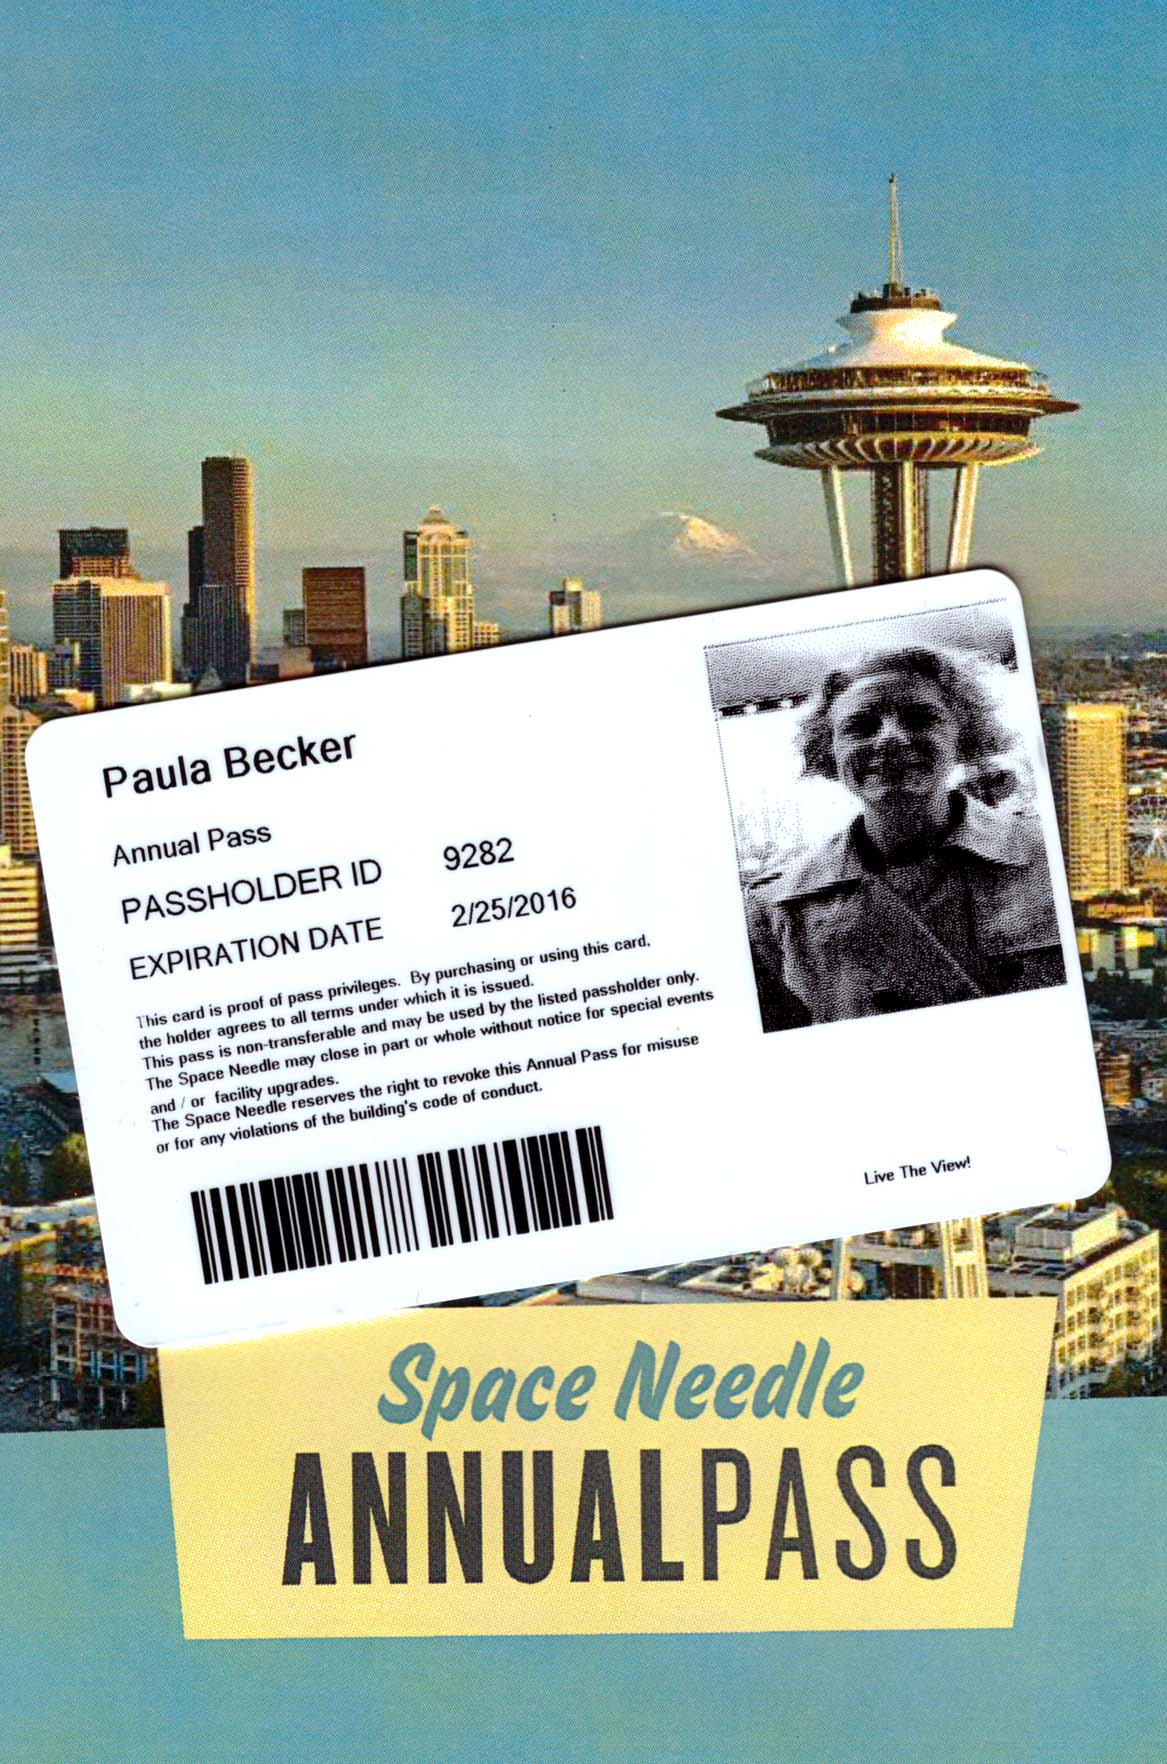 See you at the Space Needle!